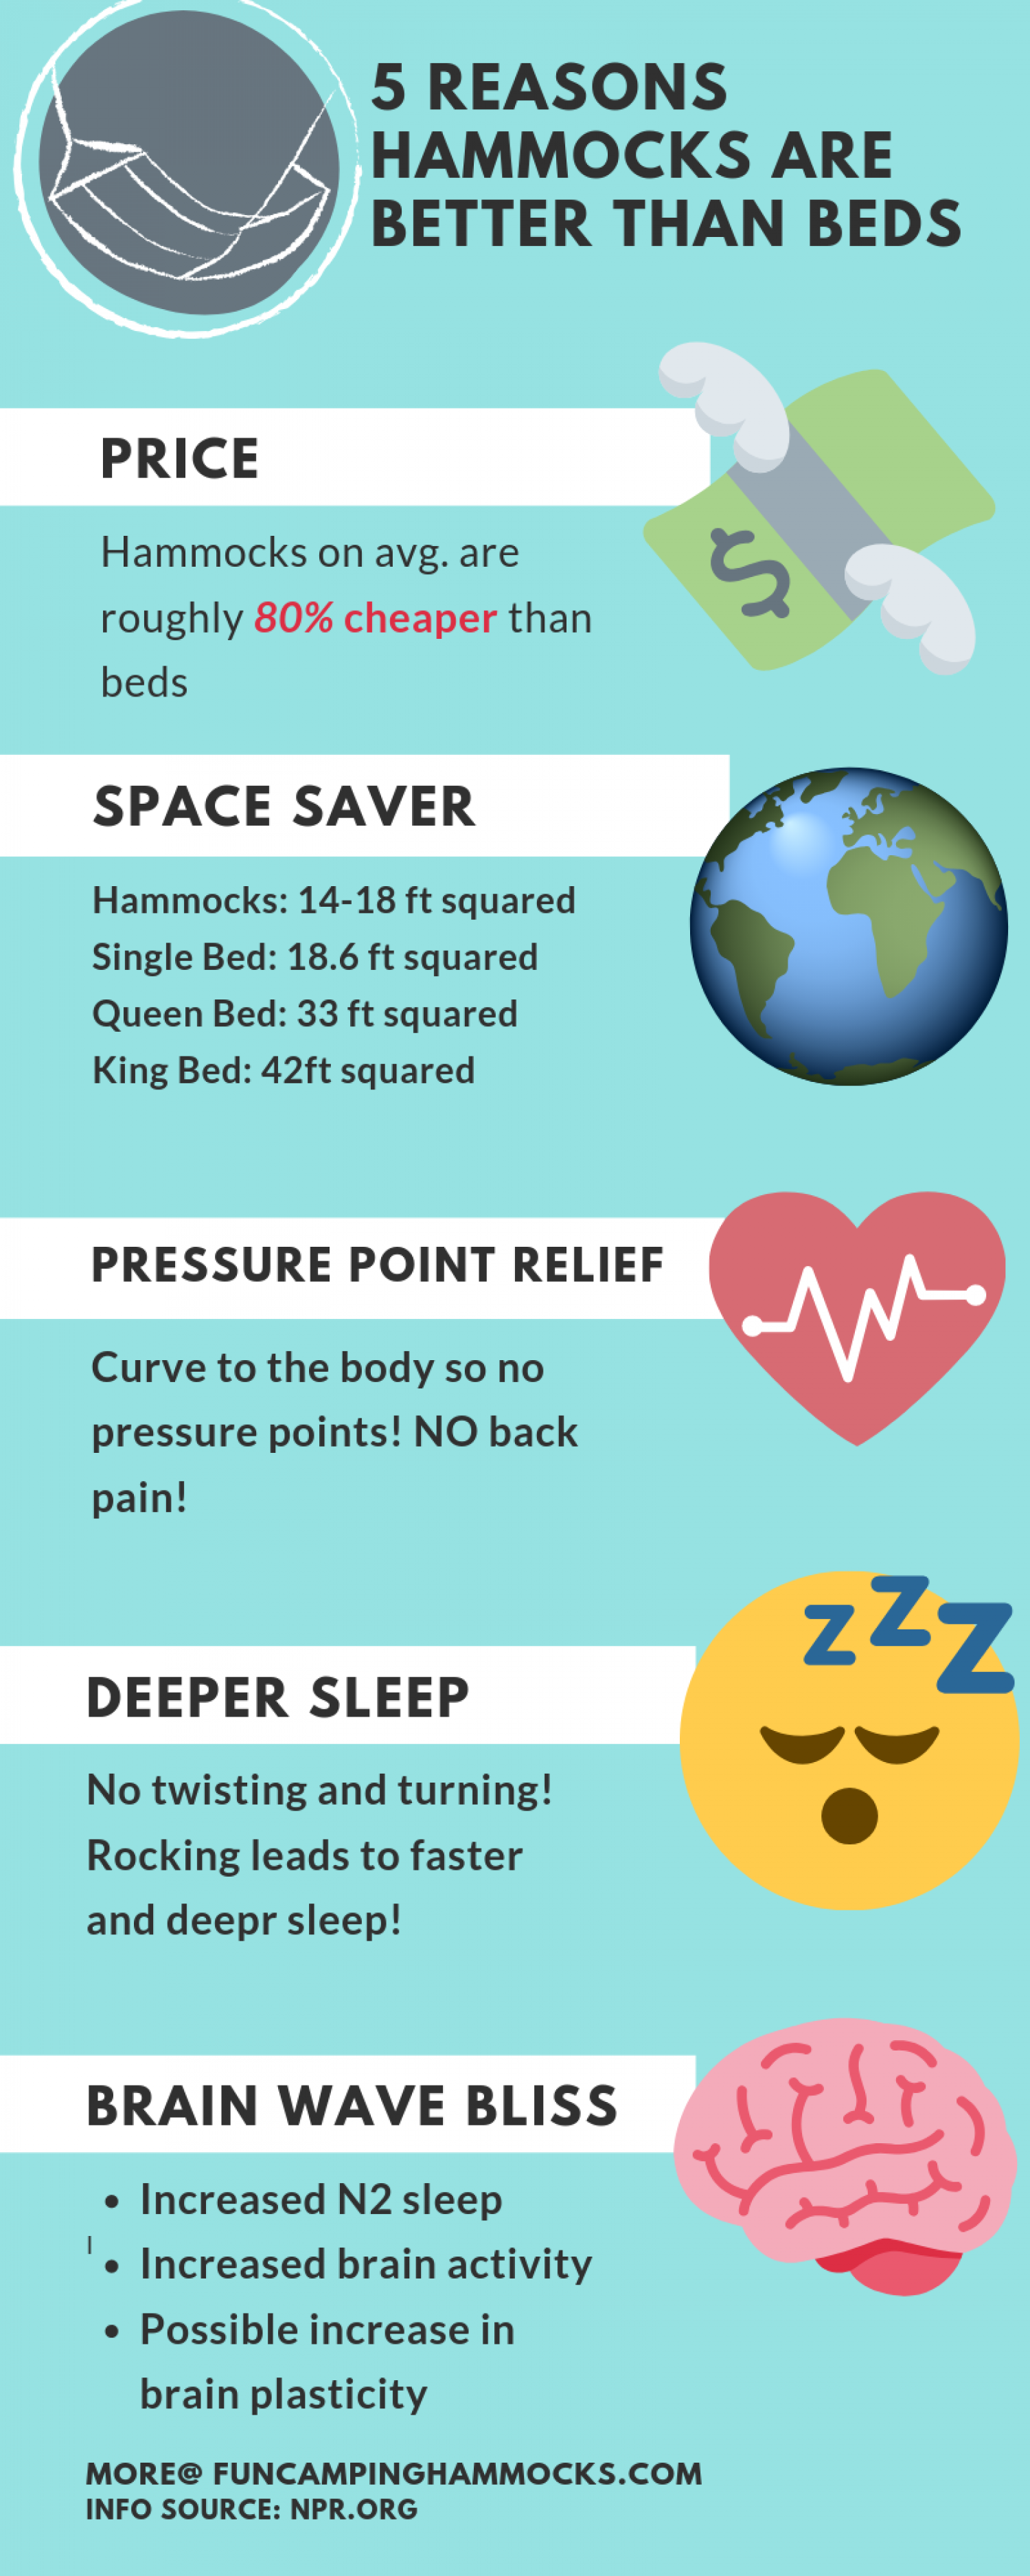 5 Reasons Hammocks Are Better Than Beds Infographic